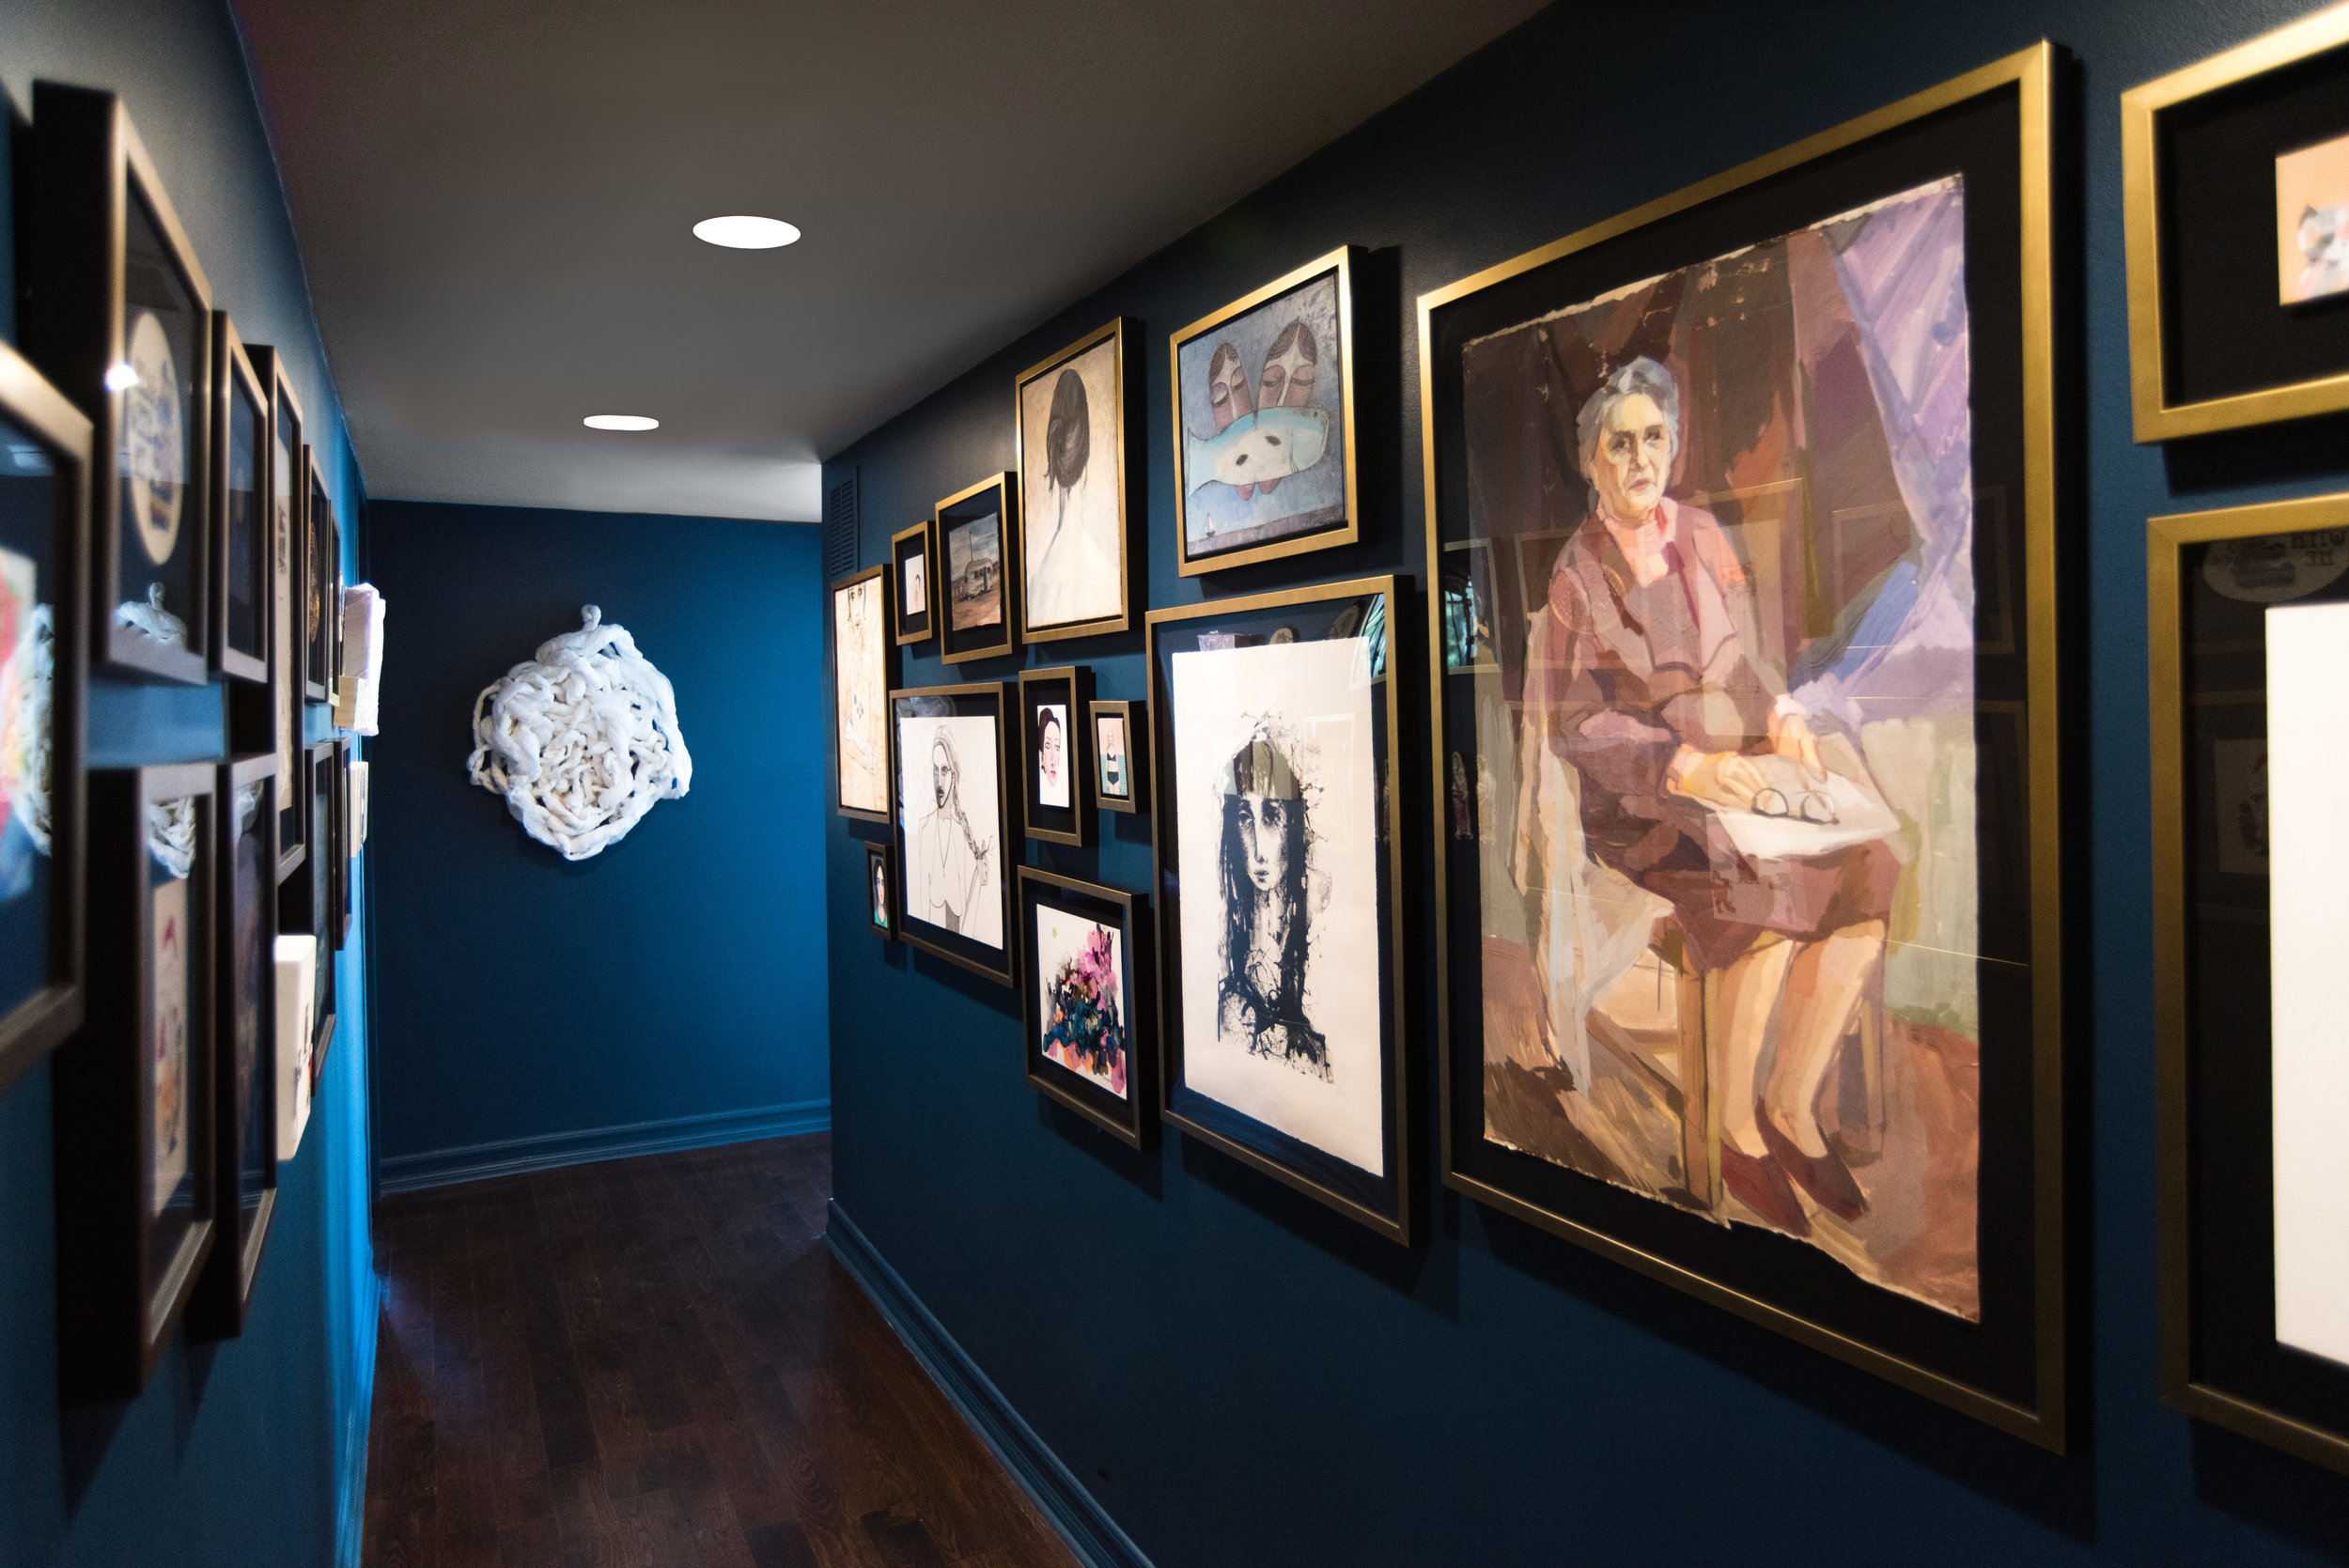 Brushed gold and black frames pop against the bold wall color and unify the homeowner's art collection.